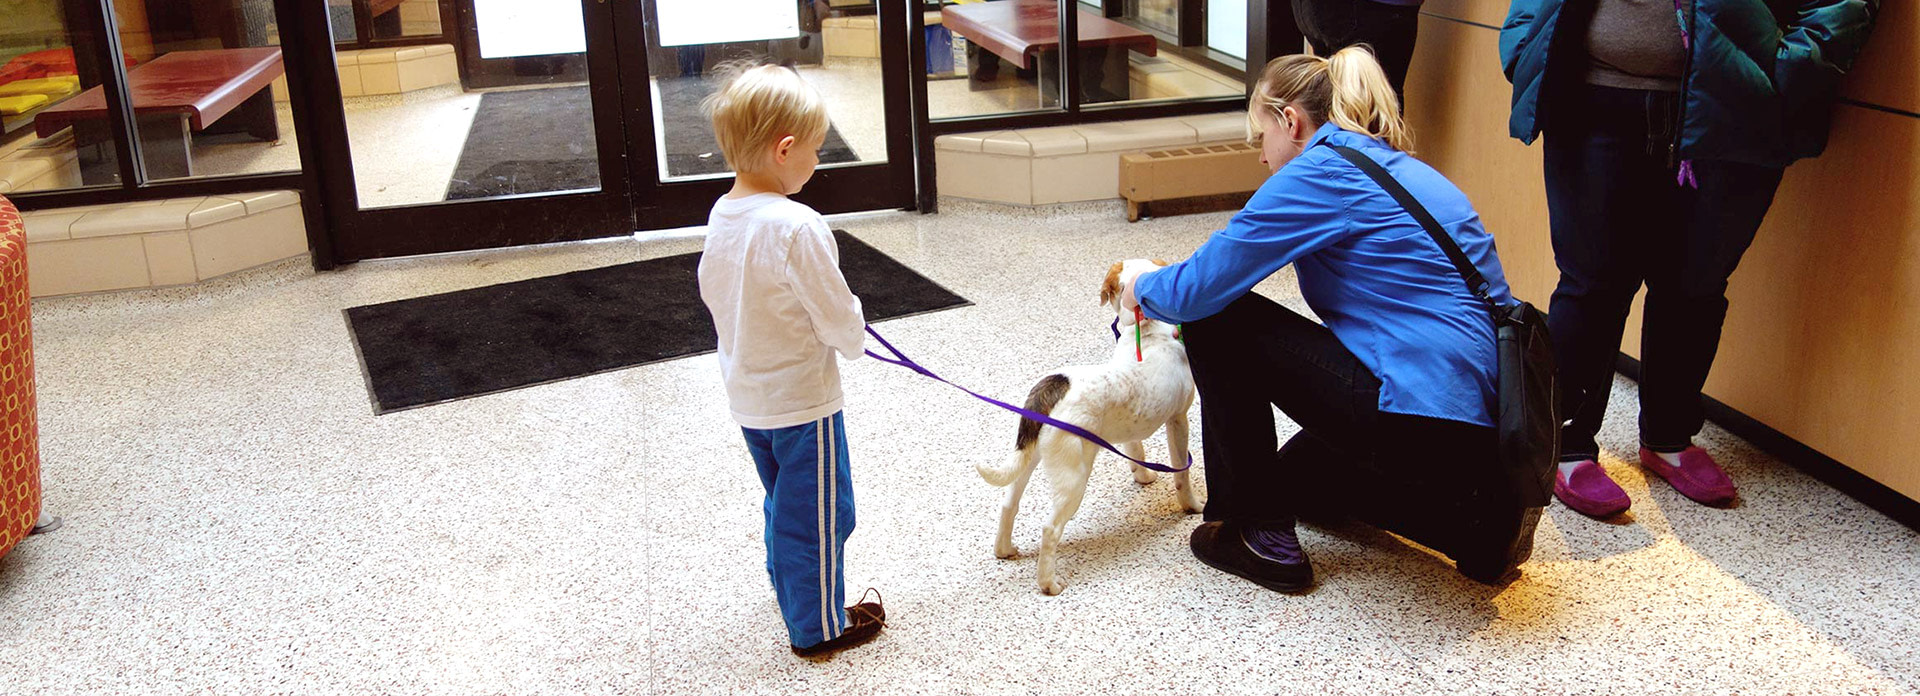 A little boy standing with a dog on a leash. His mother is kneeling down petting the dog.